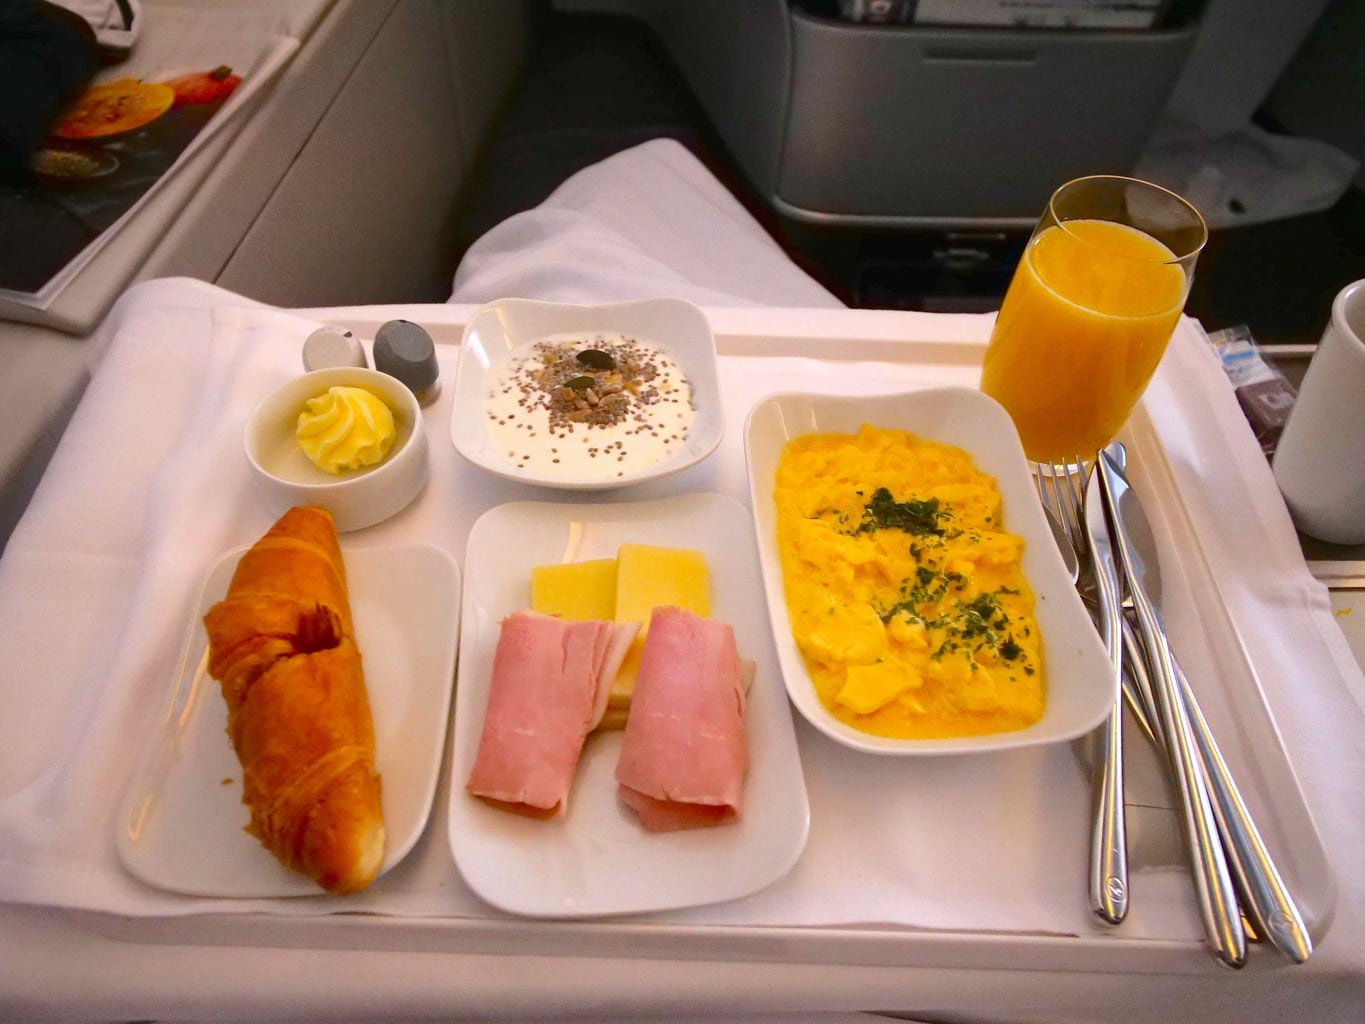 'Breakfast onboard Lufthansa Business Class""